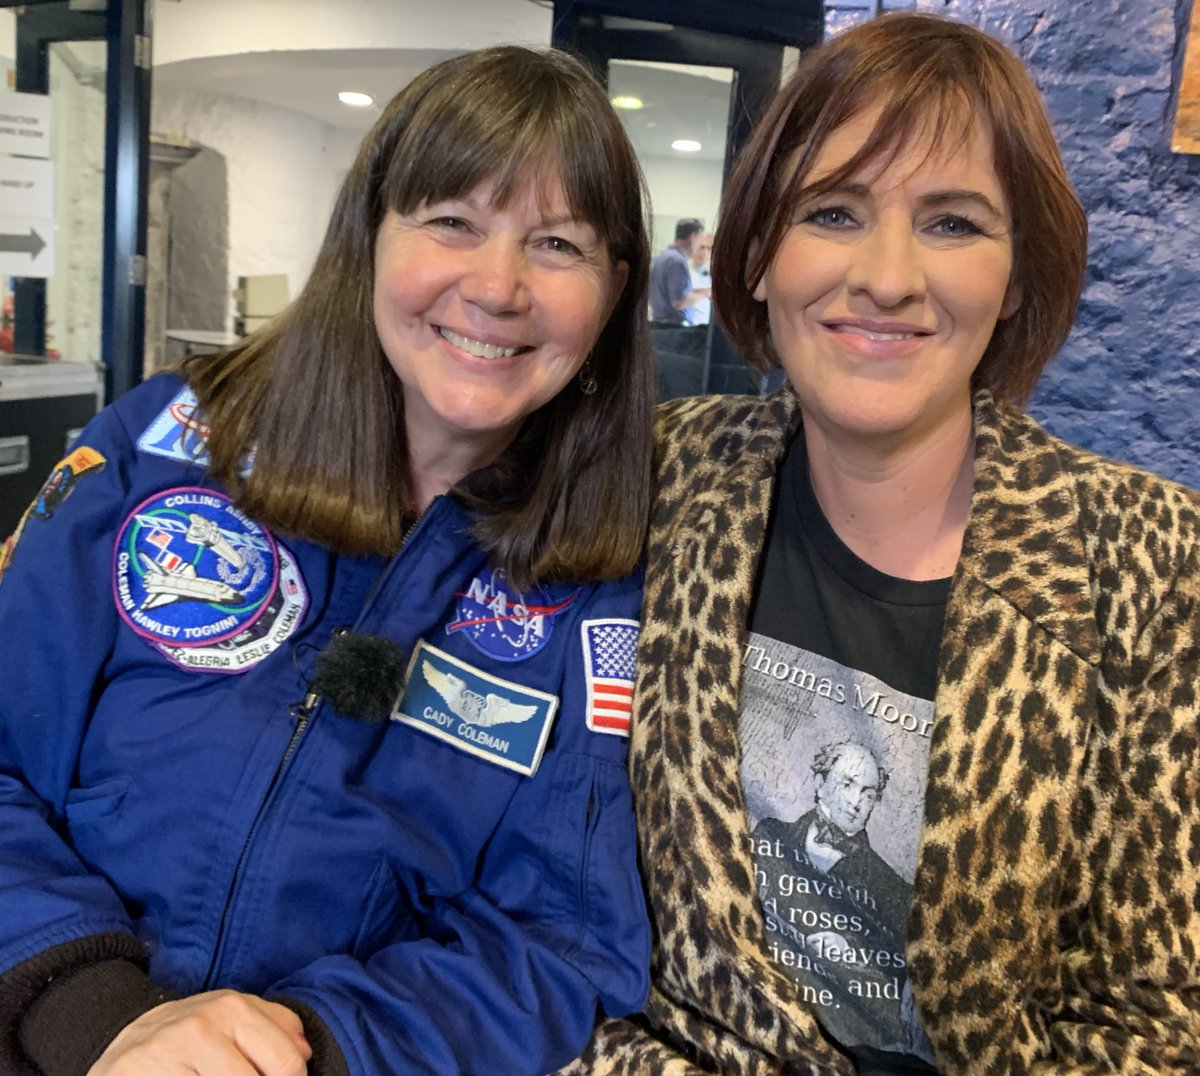 """Amazing atmosphere here at the Blackrock Observatory in Cork for @RTEOne """"50 YEARS: TO THE MOON & BACK"""" Such an honour to meet astronaut Cady Coleman @Astro_Cady 🚀#OntheMoonRTE"""